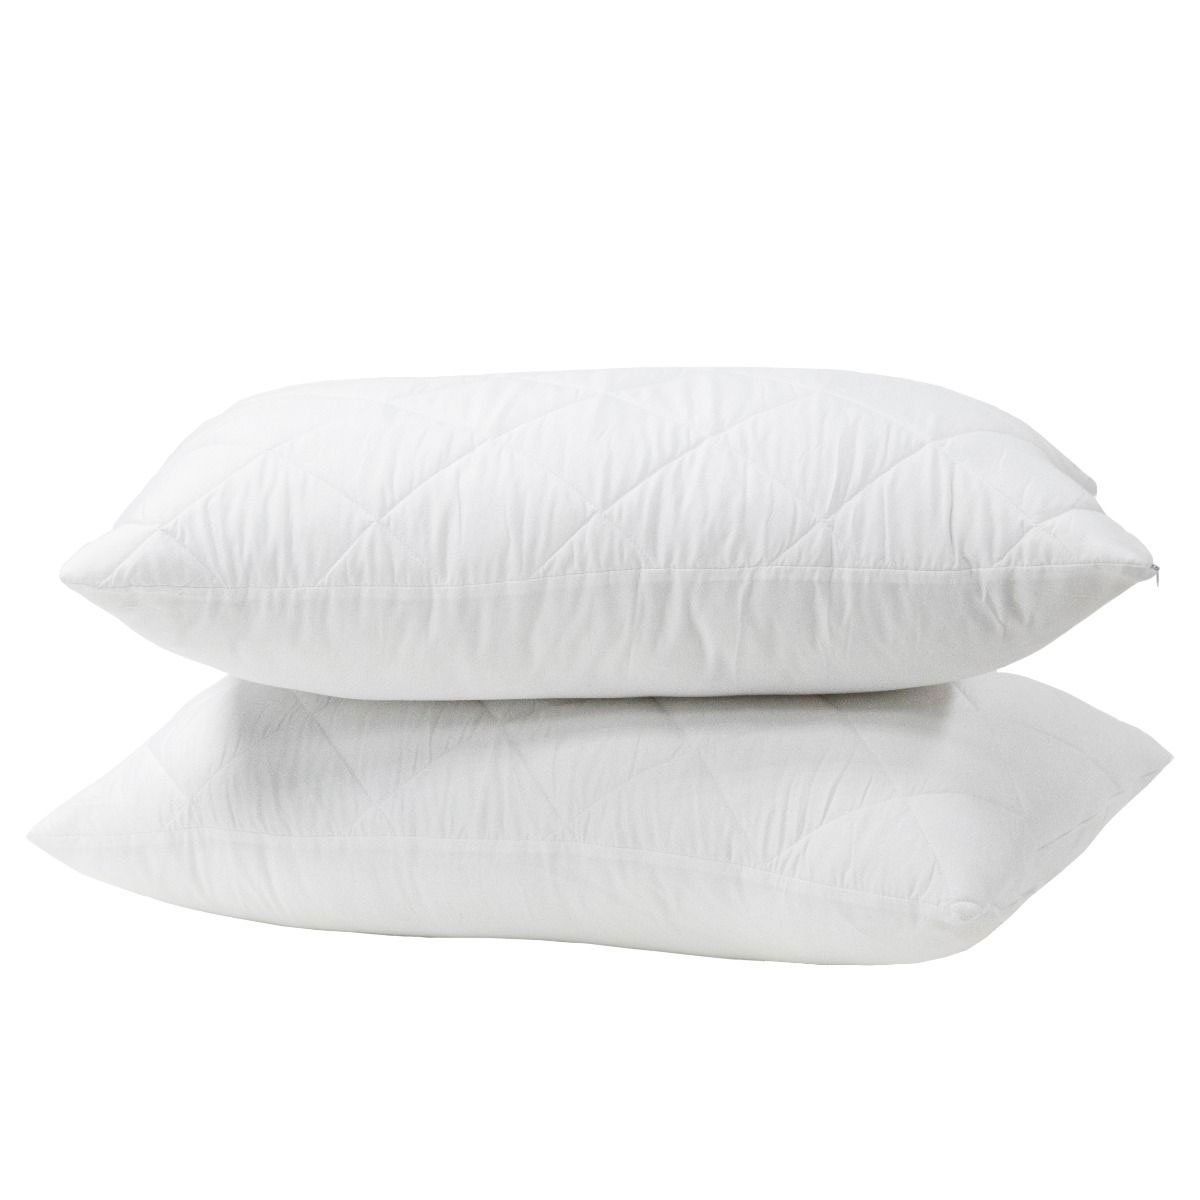 Easy Care Zipped Pillow Protector Pair